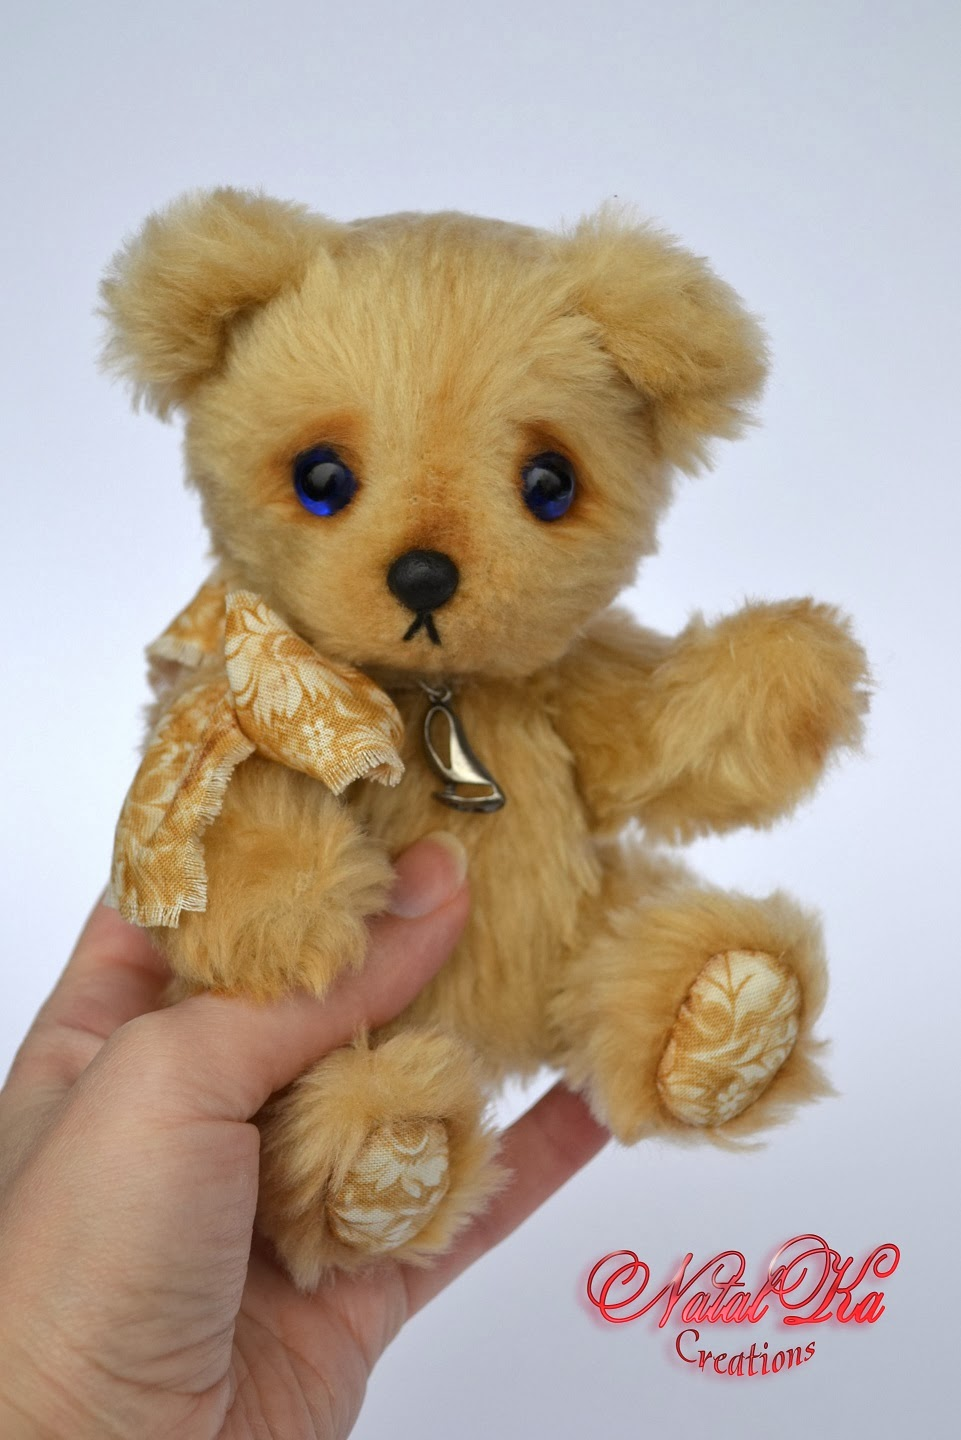 Artist teddy bear handmade by Natalka Creations